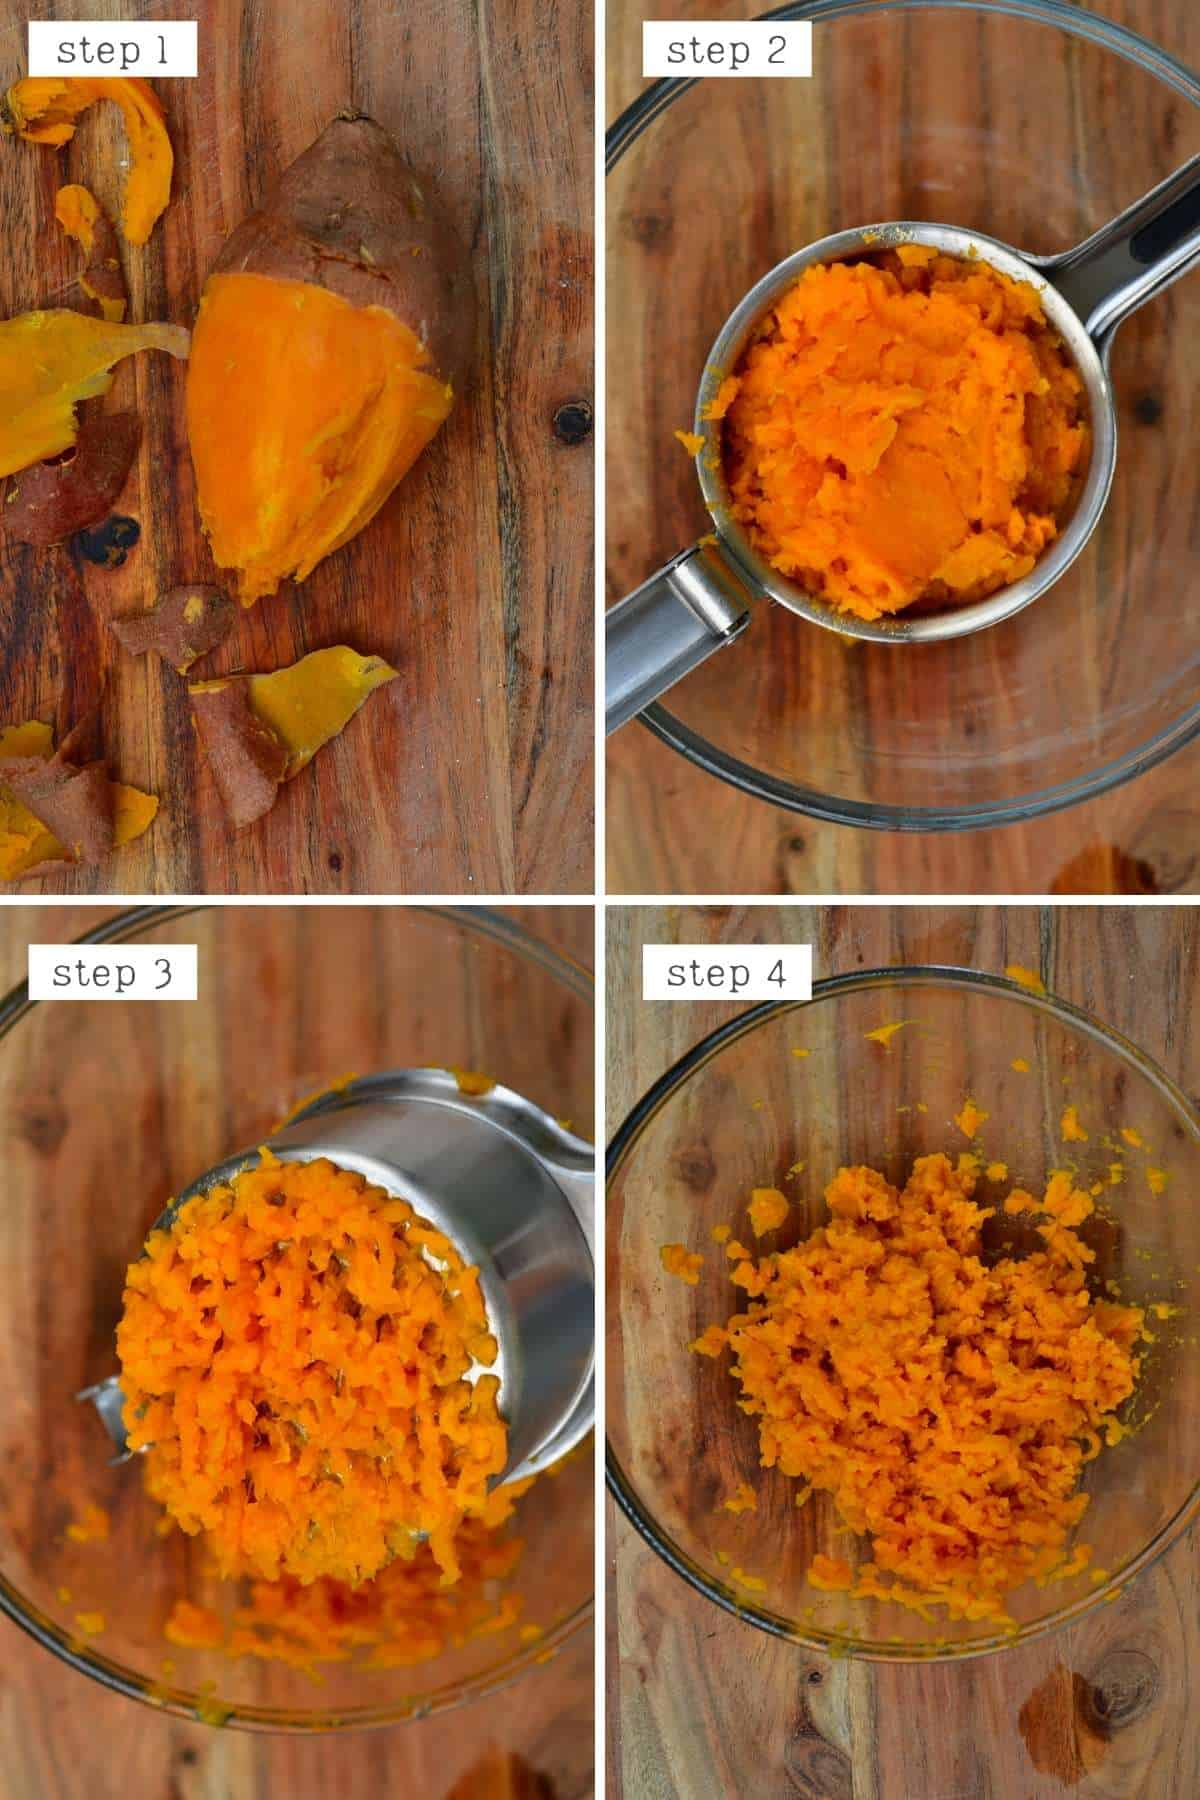 Steps for mashing sweet potato